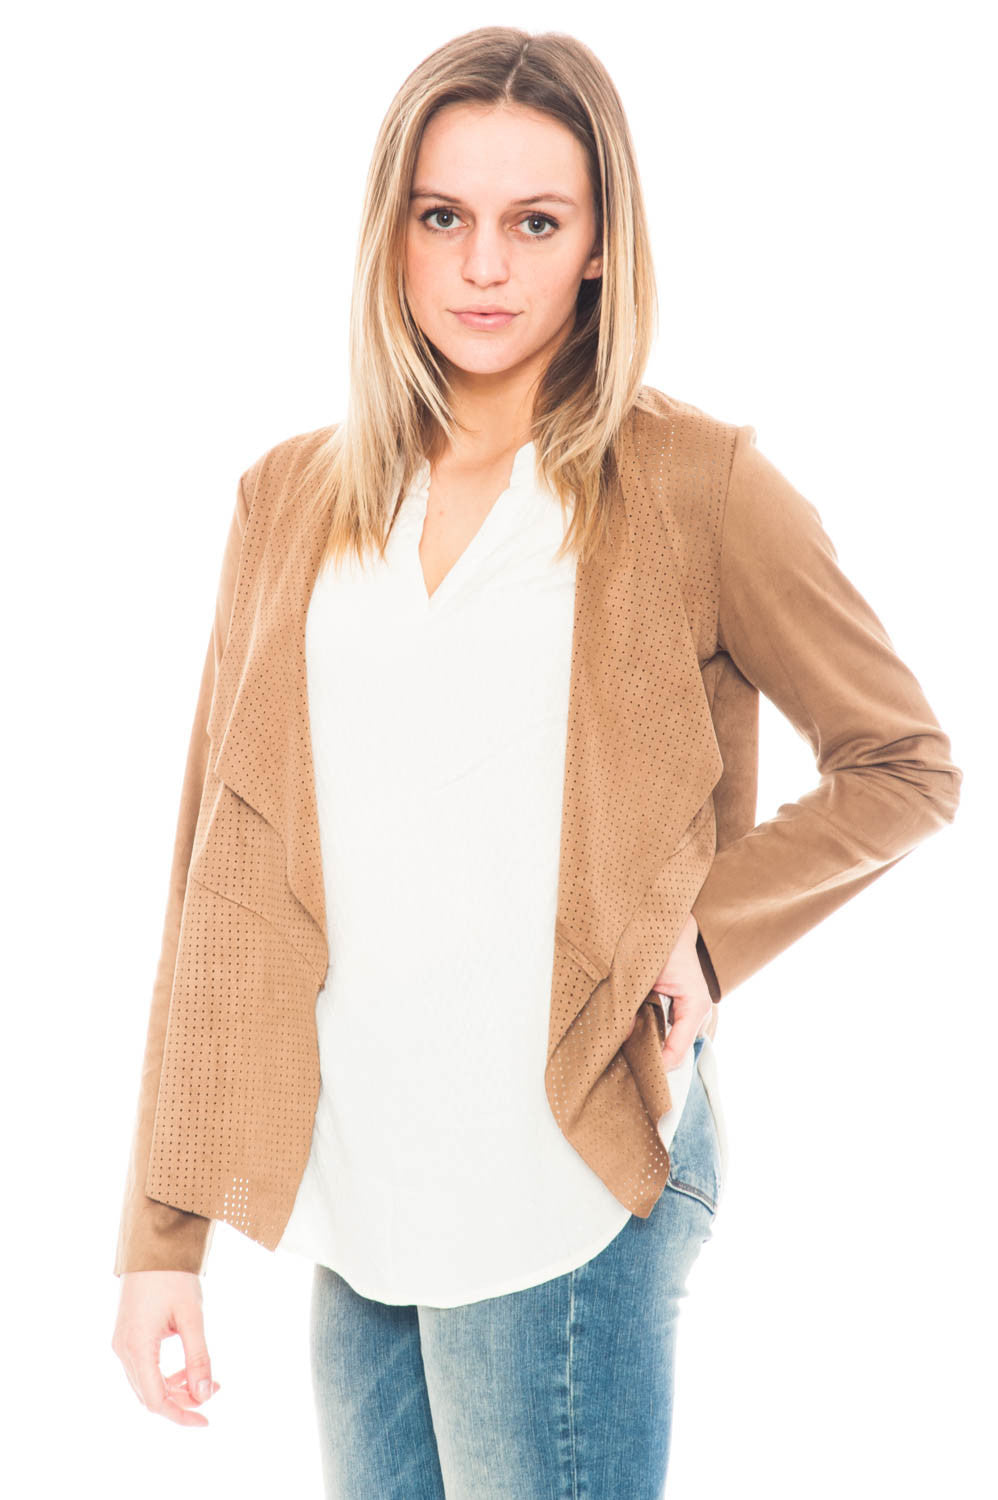 Jacket - Joline by BB Dakota perforated jacket